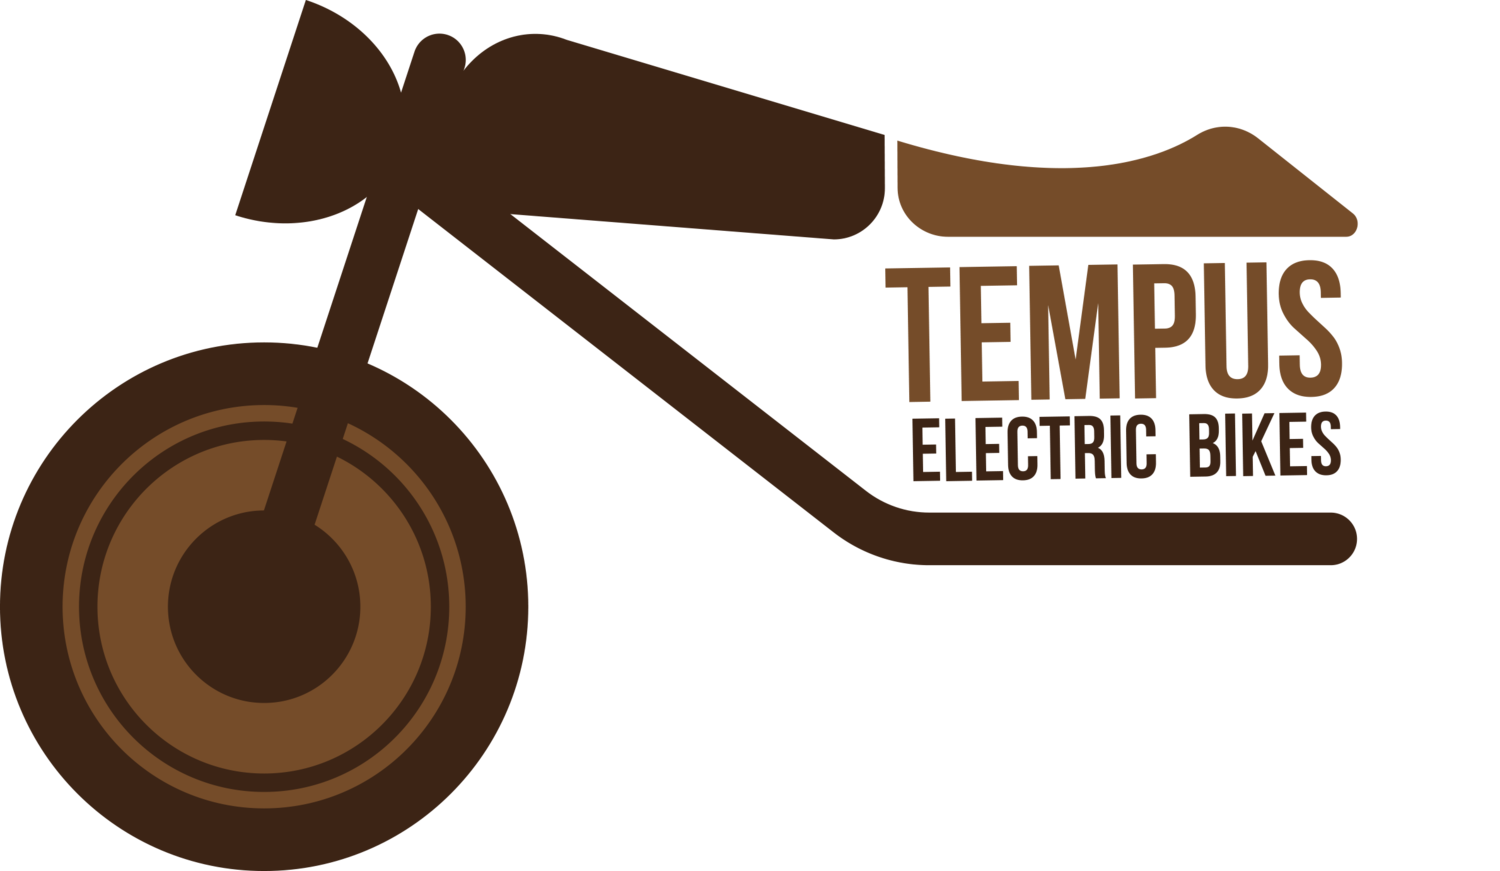 Tempus Electric Bikes: Quality Meets Vintage Design